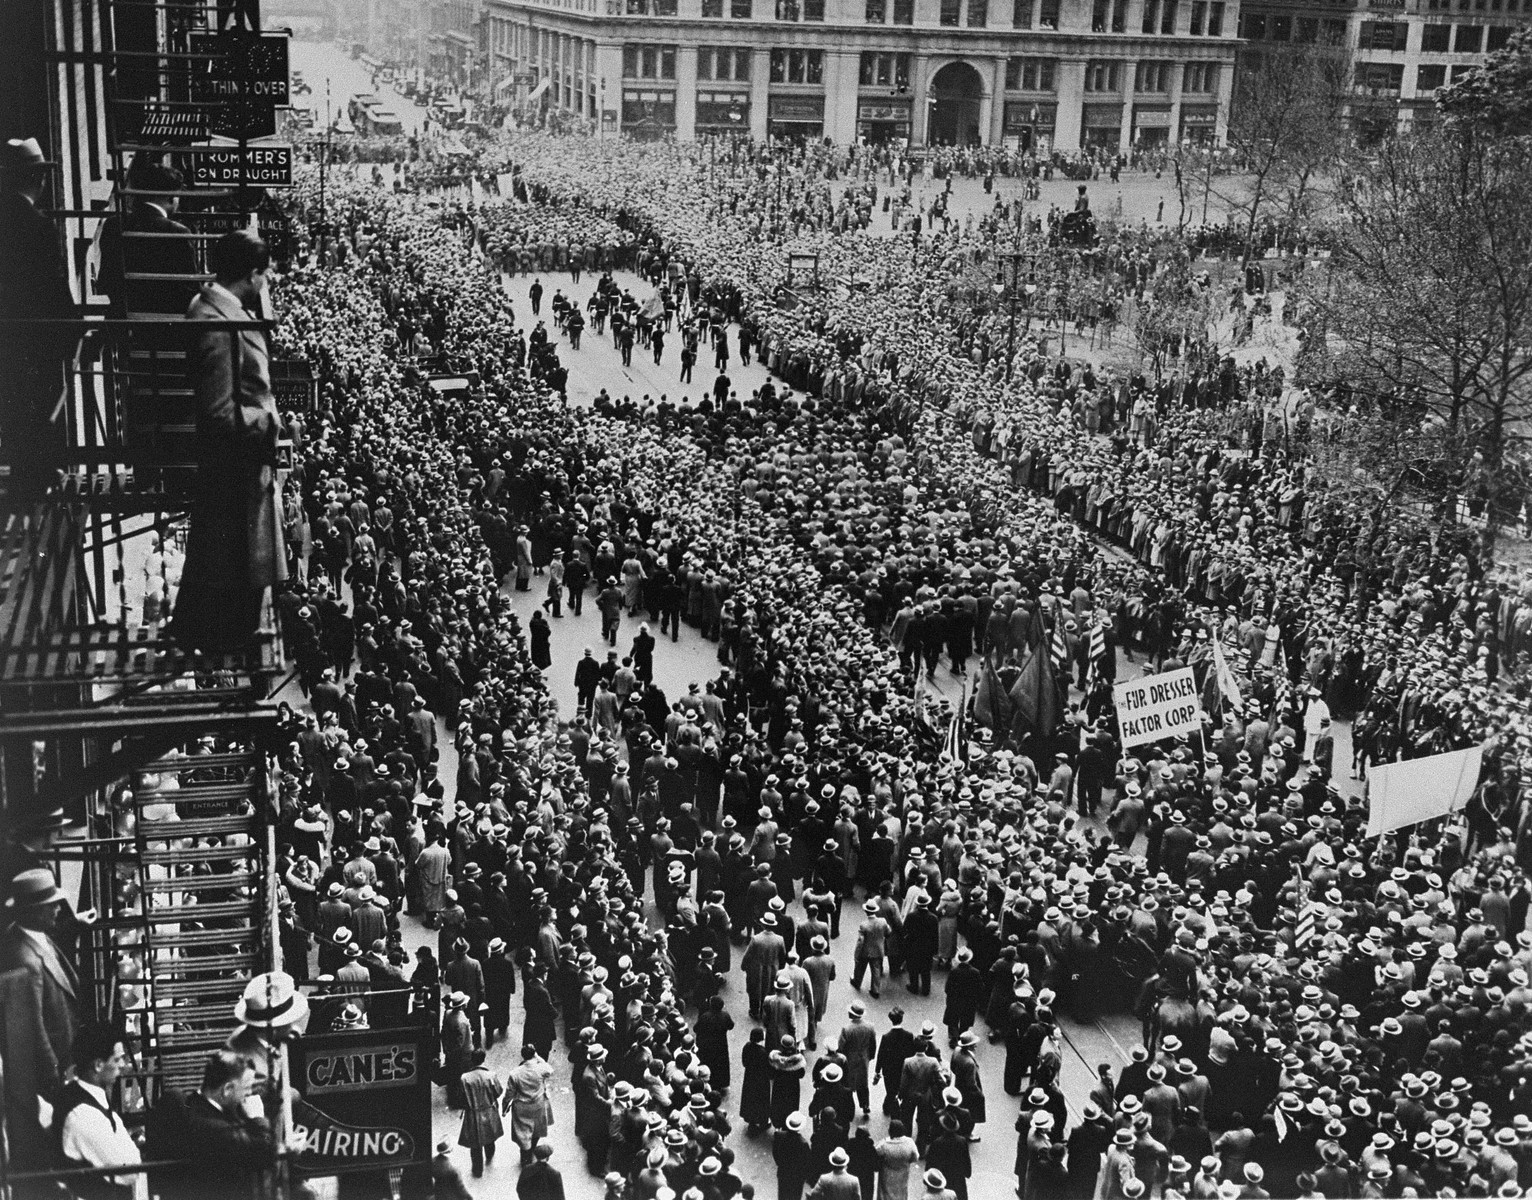 An estimated 100,000 people participate in a march from Madison Square Garden to the Battery to protest the Nazi persecution of German Jews.